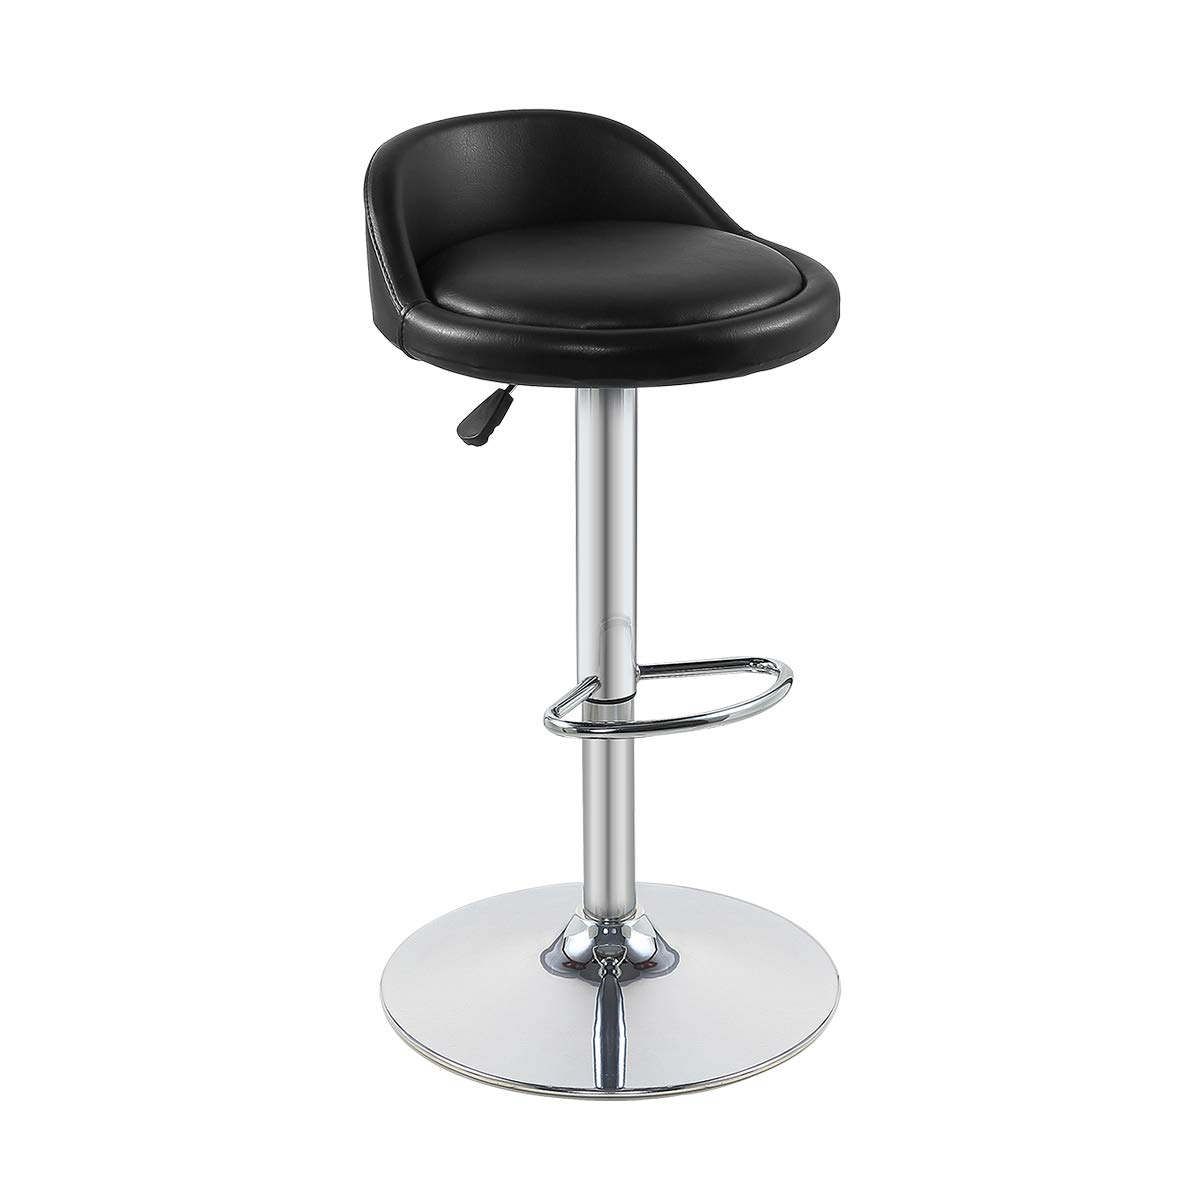 Grace Grace Bar Stool with Backrest and Footrest- Pneumatic Adjustable Swivel Counter Height Heavy Duty for Kitchen, Shop, Dining Room, Living Room, Caf Bar Stool, Black